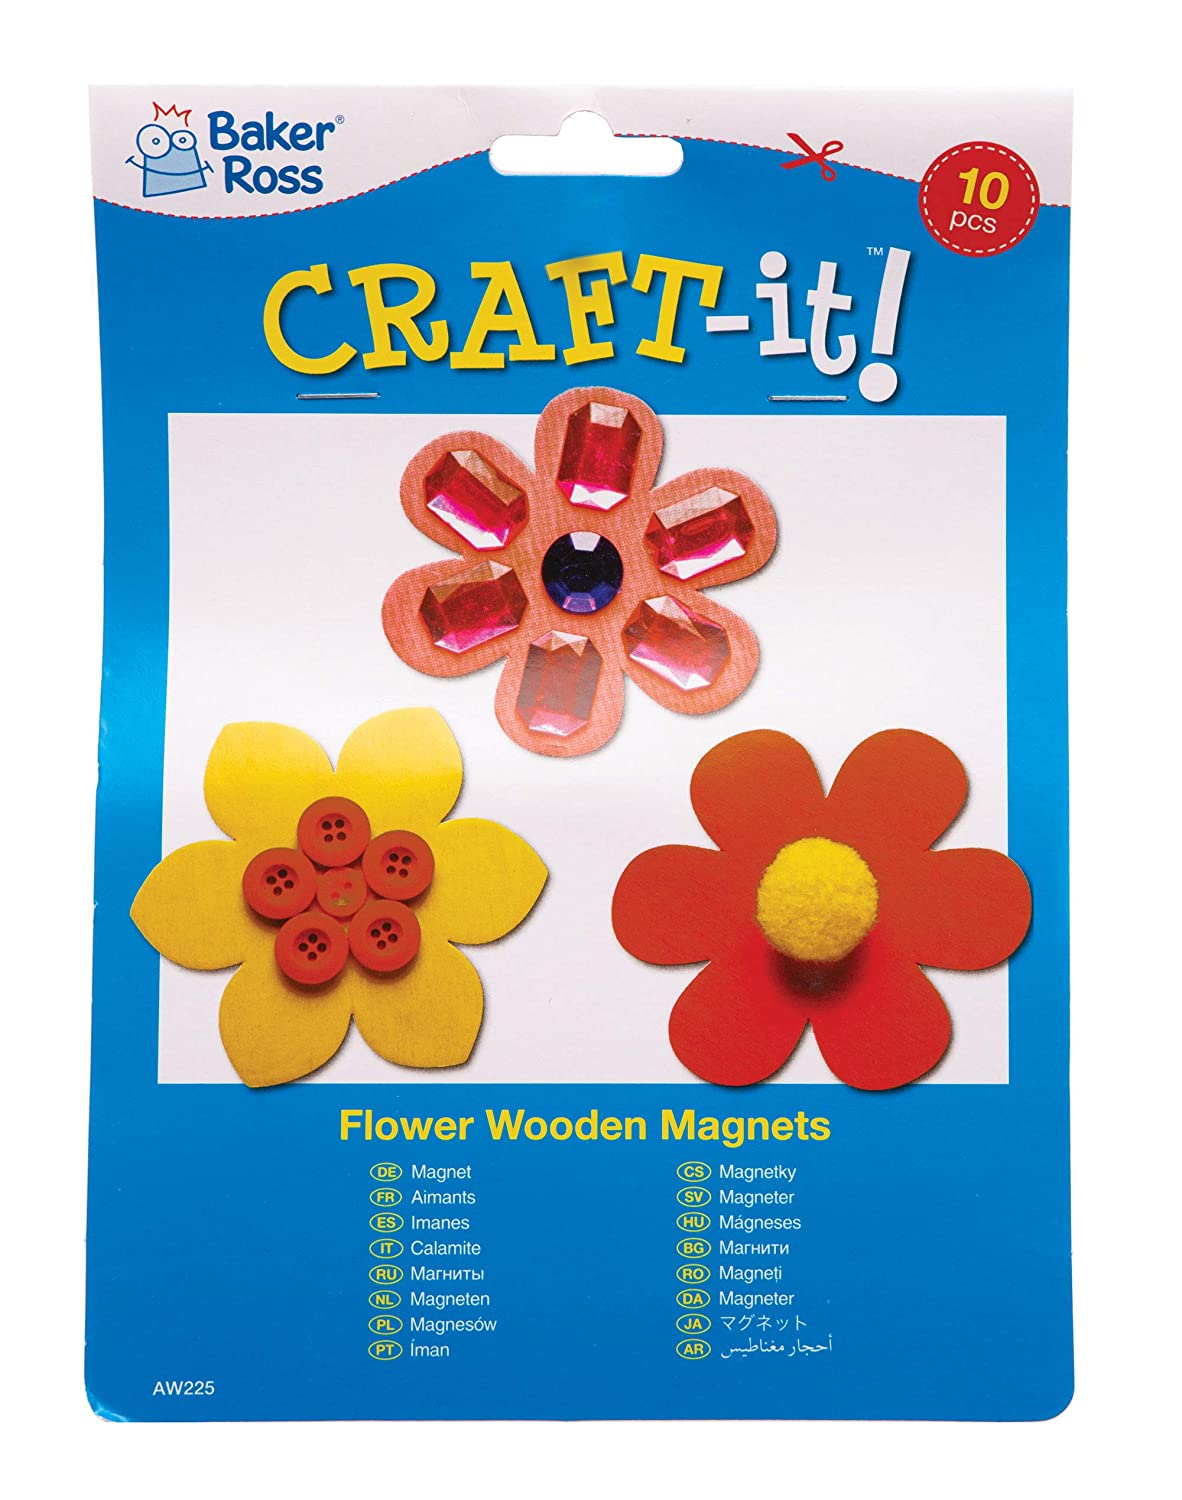 Spring Themed Crafts for Kids to Decorate and Display Pack of 10 Baker Ross Flower Wooden Magnets